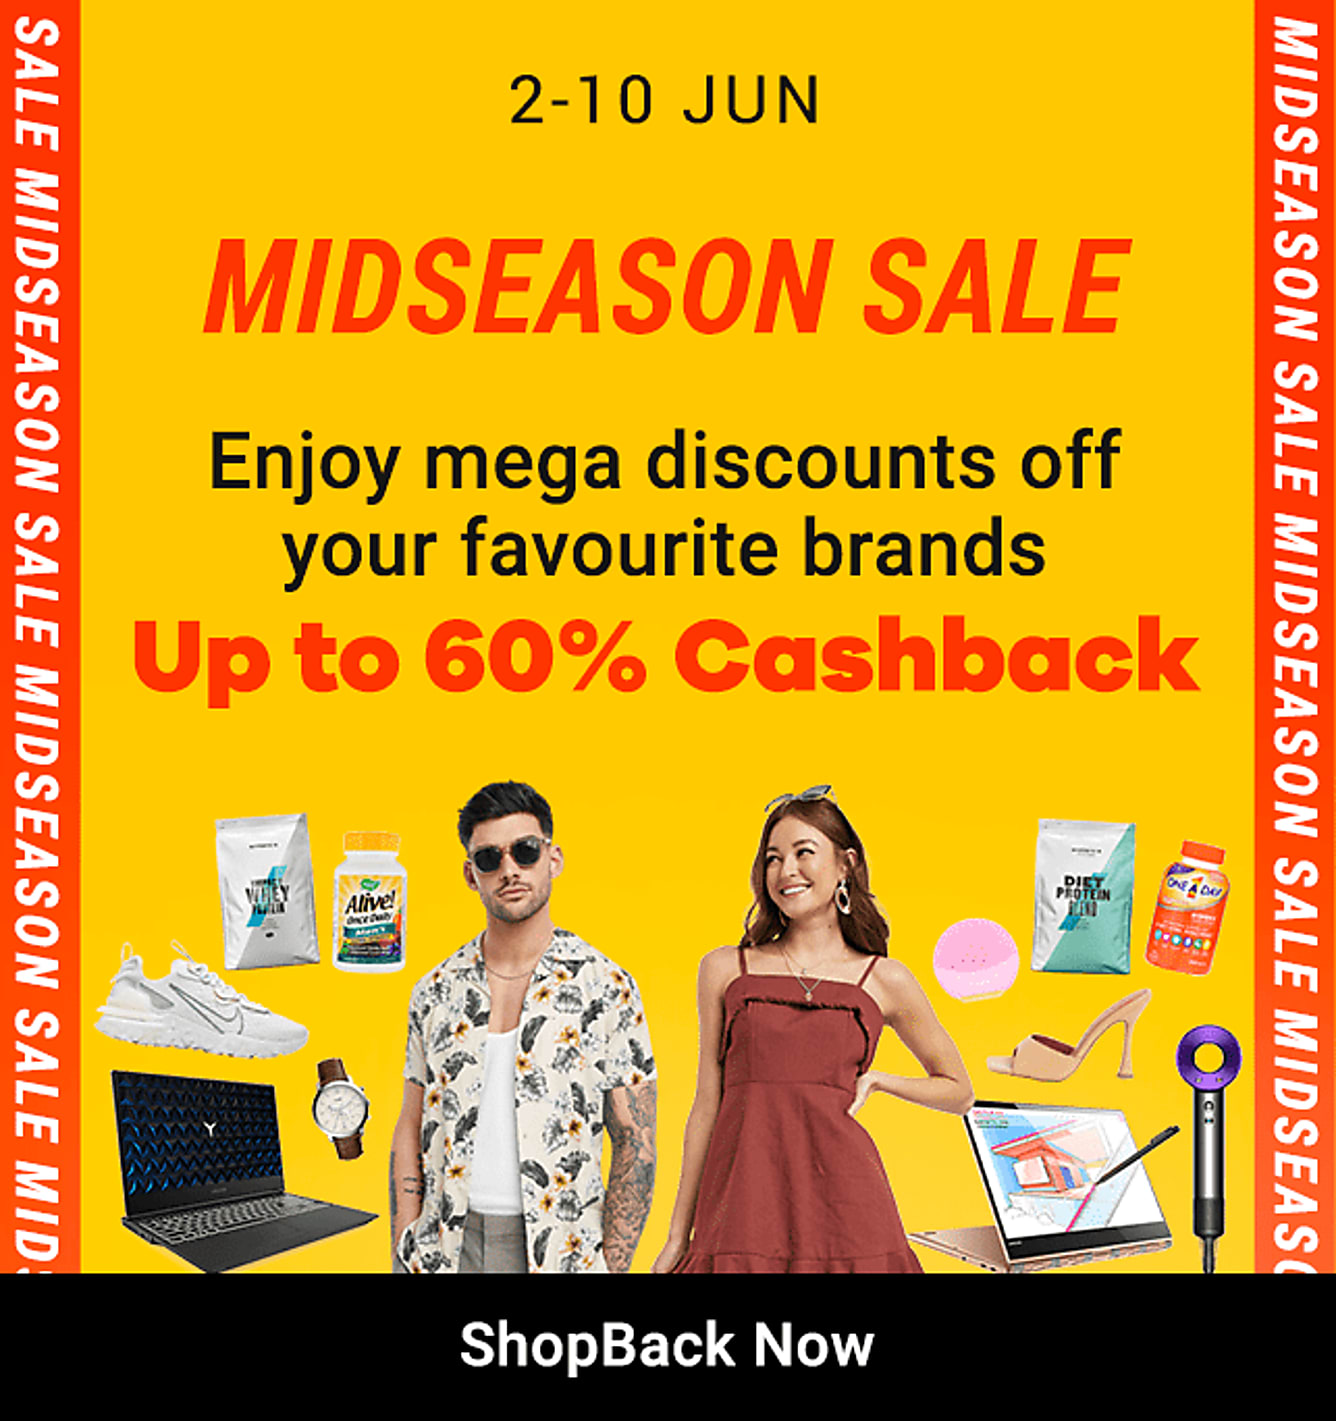 Mid Season Sale Up to 60% Cashback